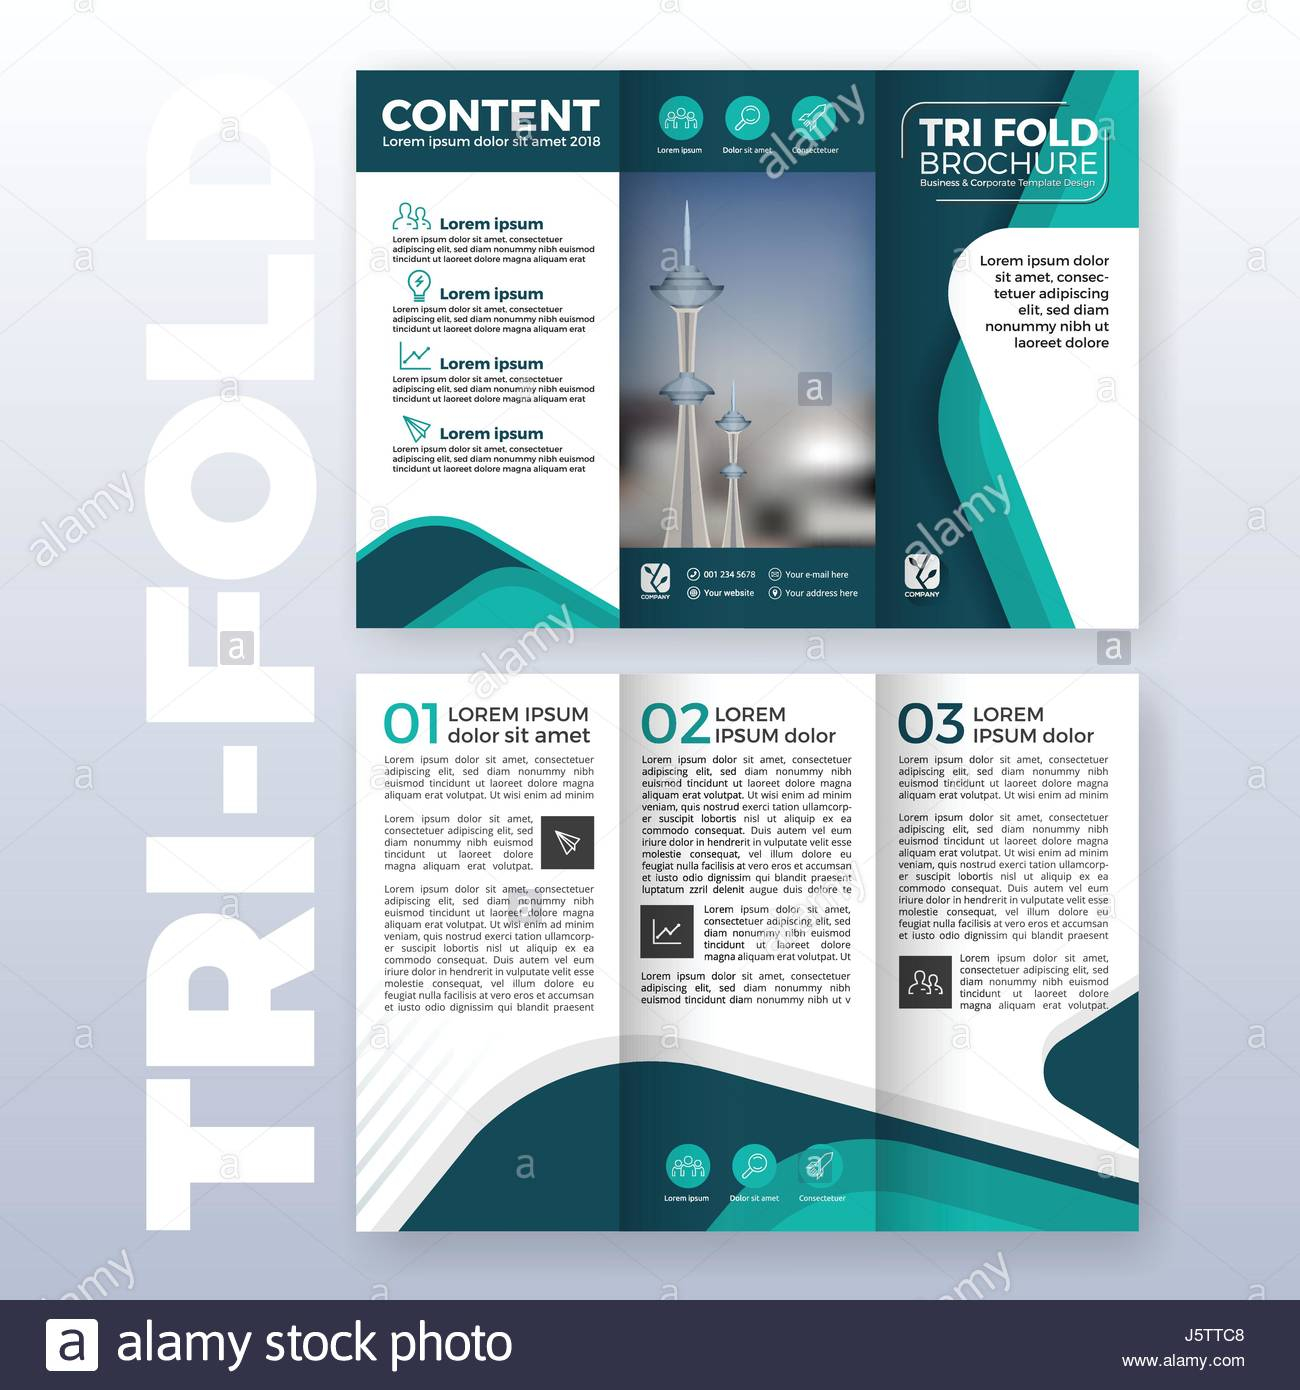 Letter Size Tri Fold Brochure Template - Business Tri Fold Brochure Template Design with Turquoise Color